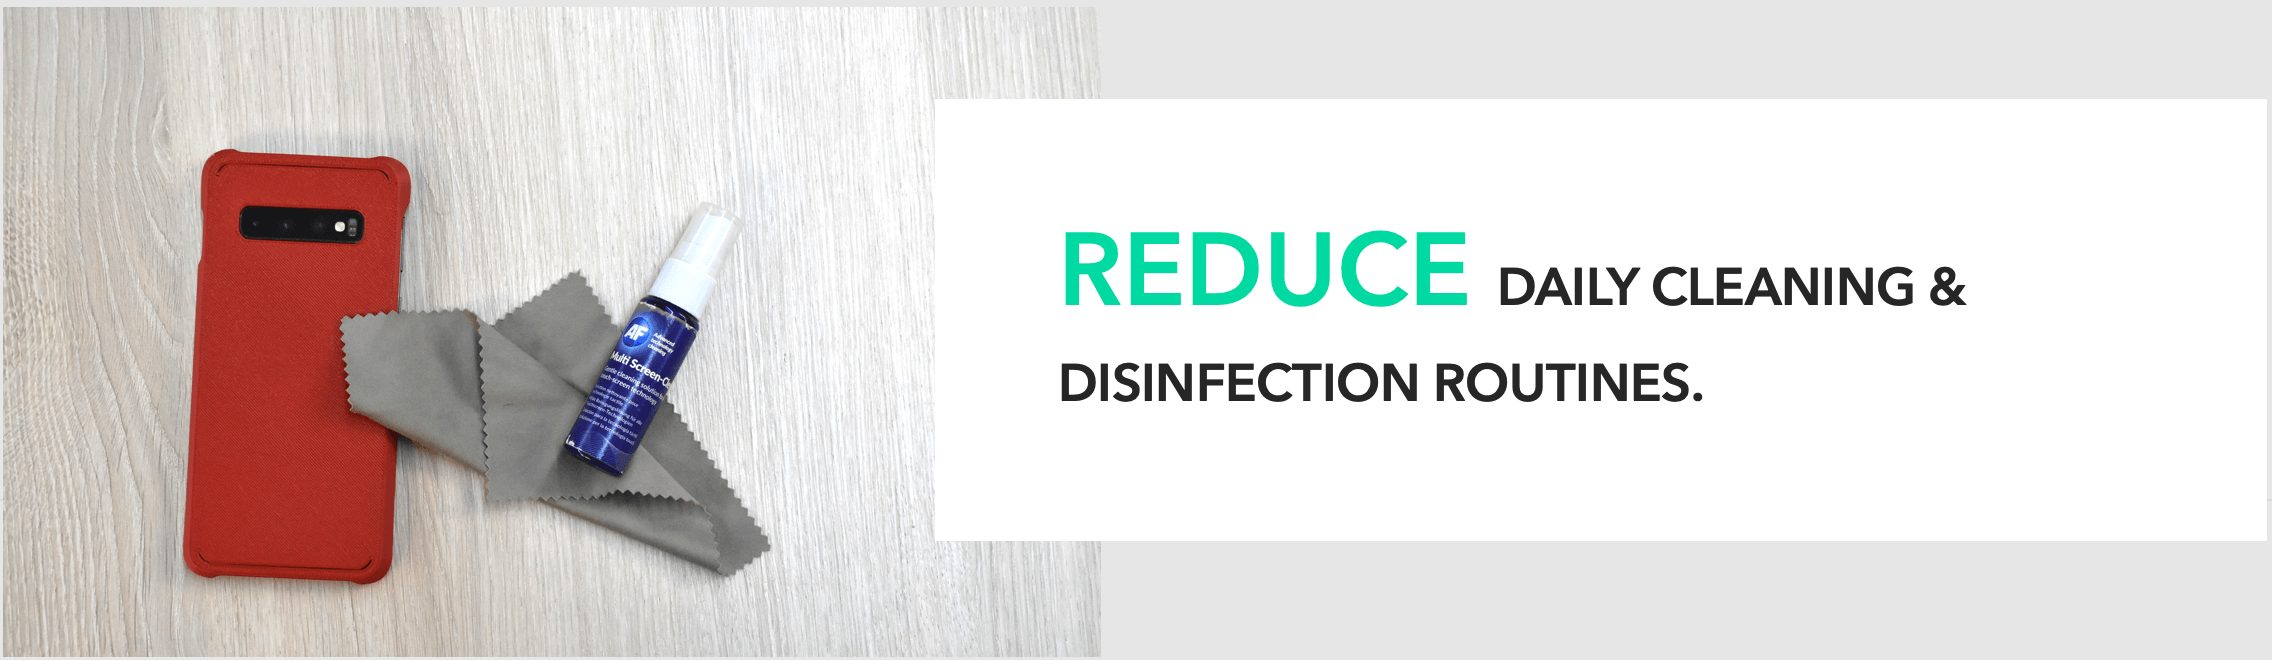 Disinfection Routines